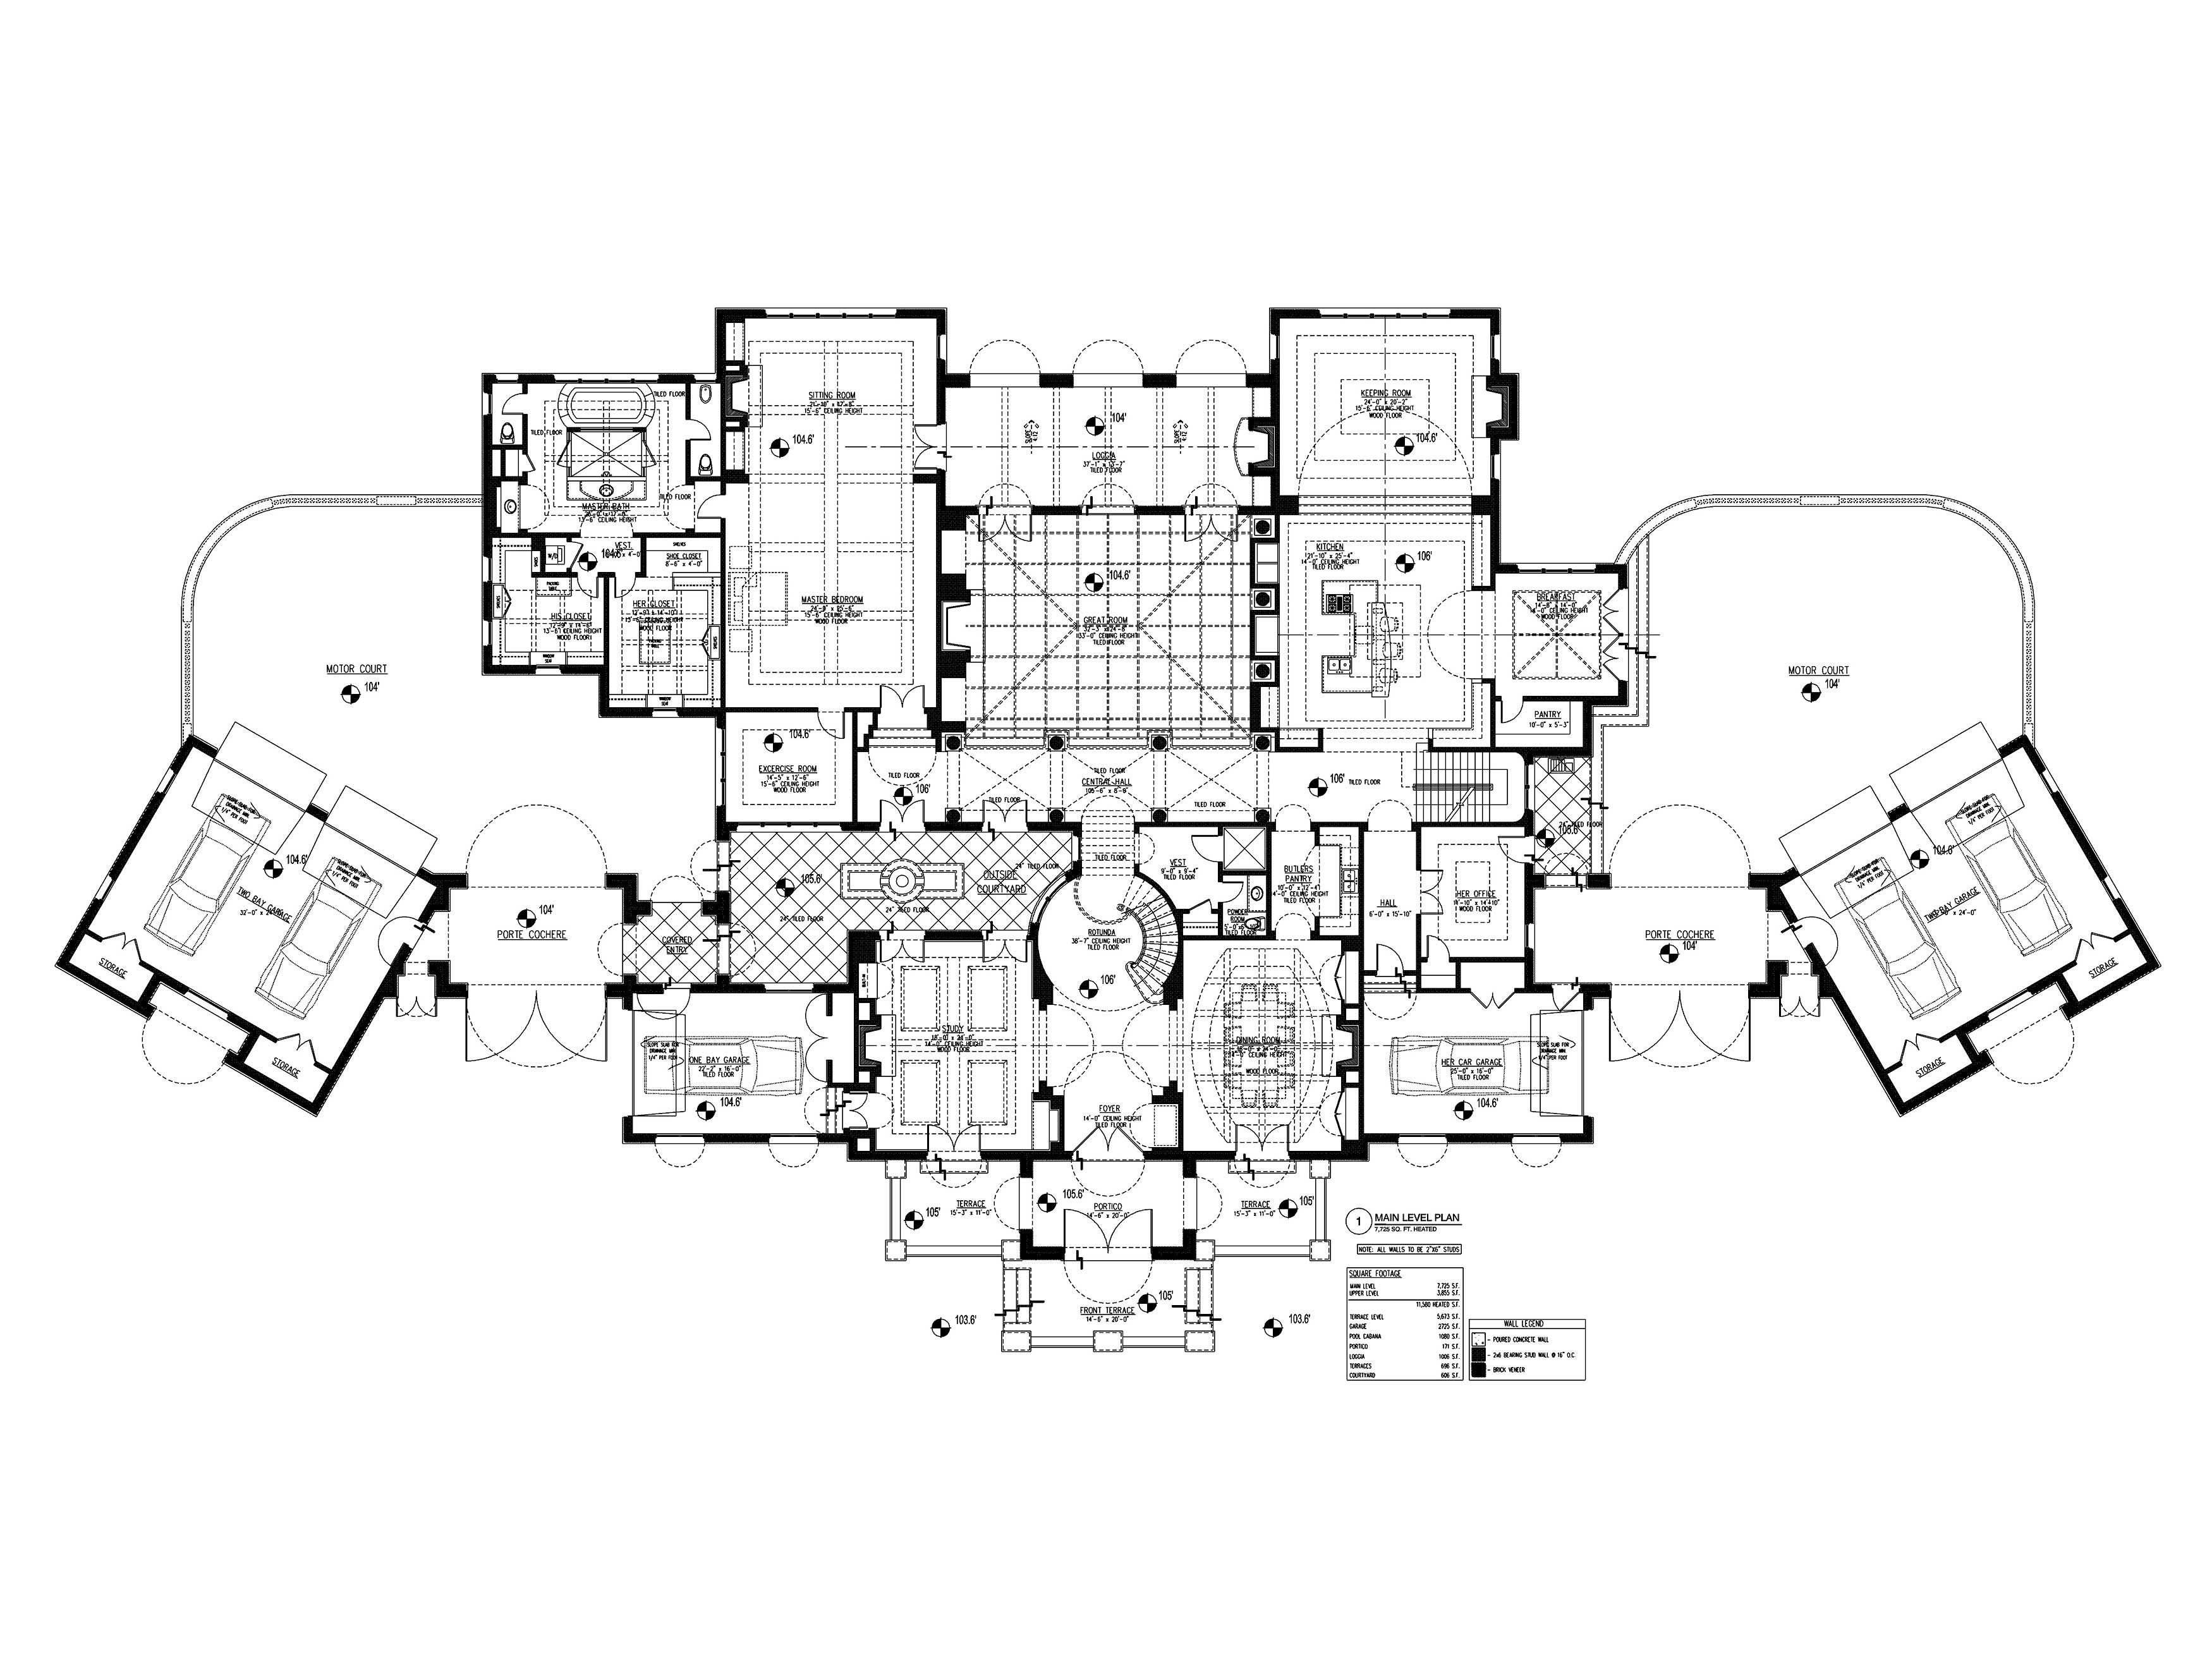 Luxury Houseplans Home Design 25255 Courtyard House Plans